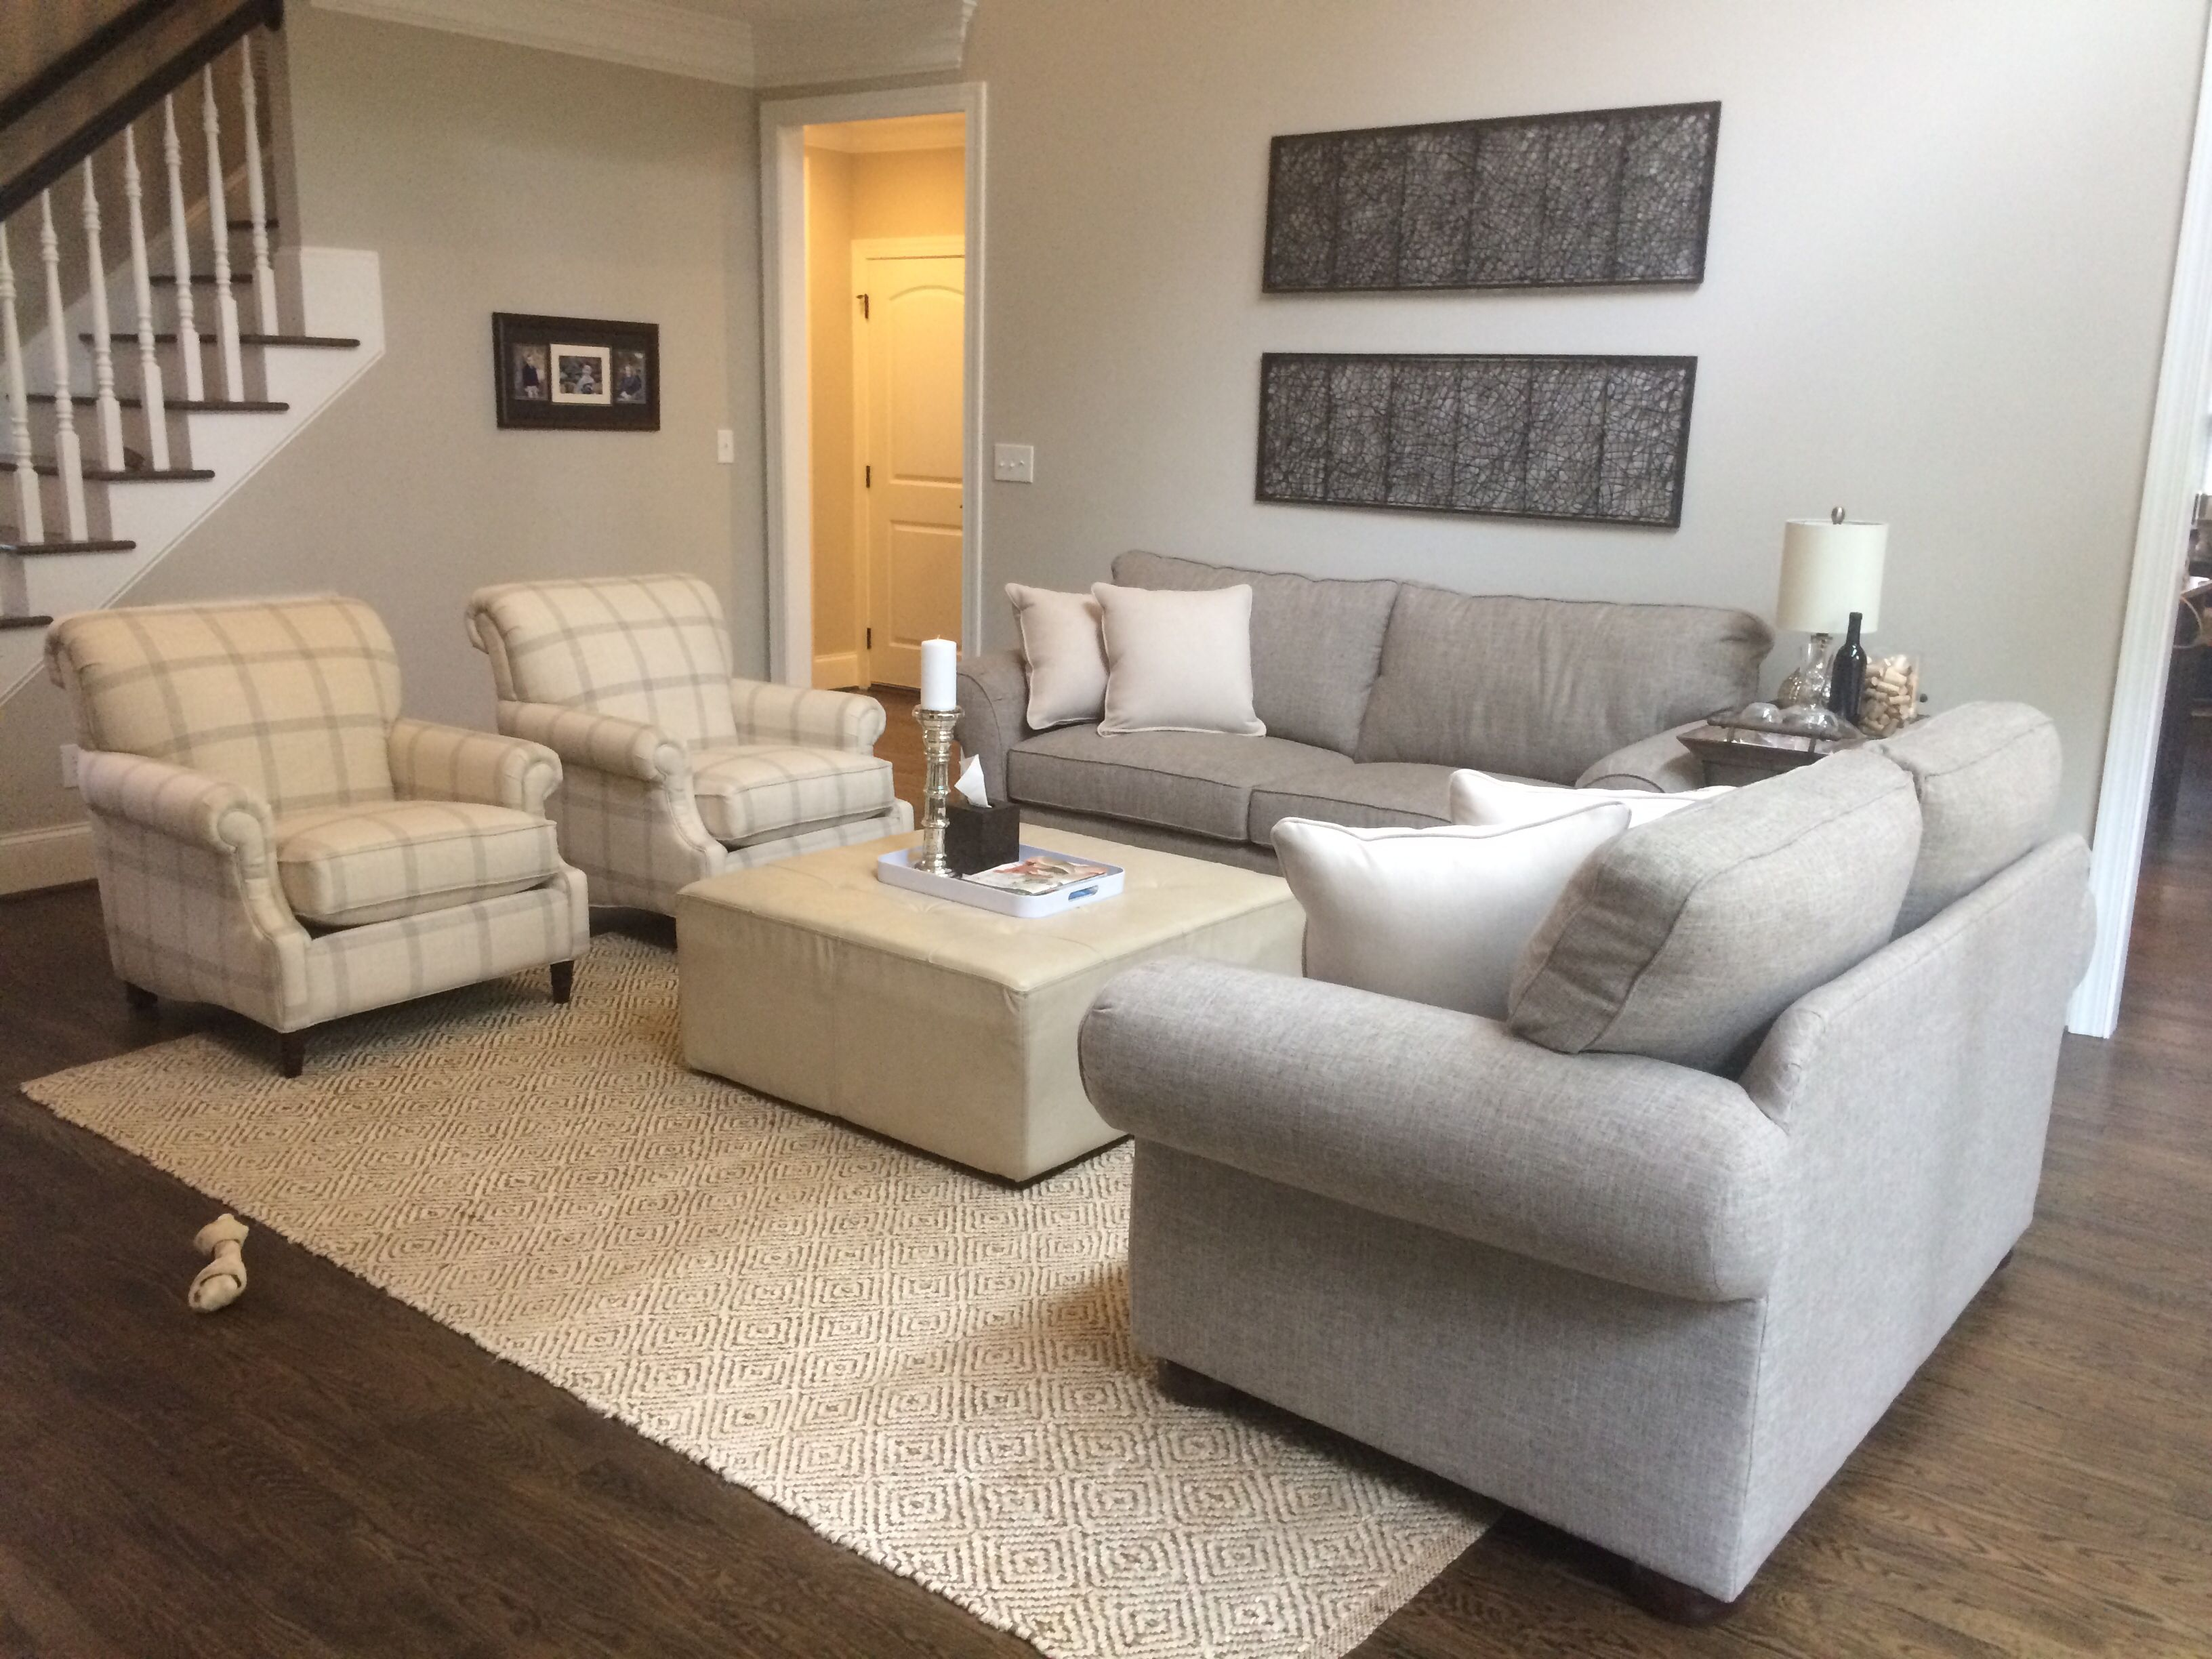 grey oversized chair with ottoman heavy duty chairs couches patterned jute rug cream leather